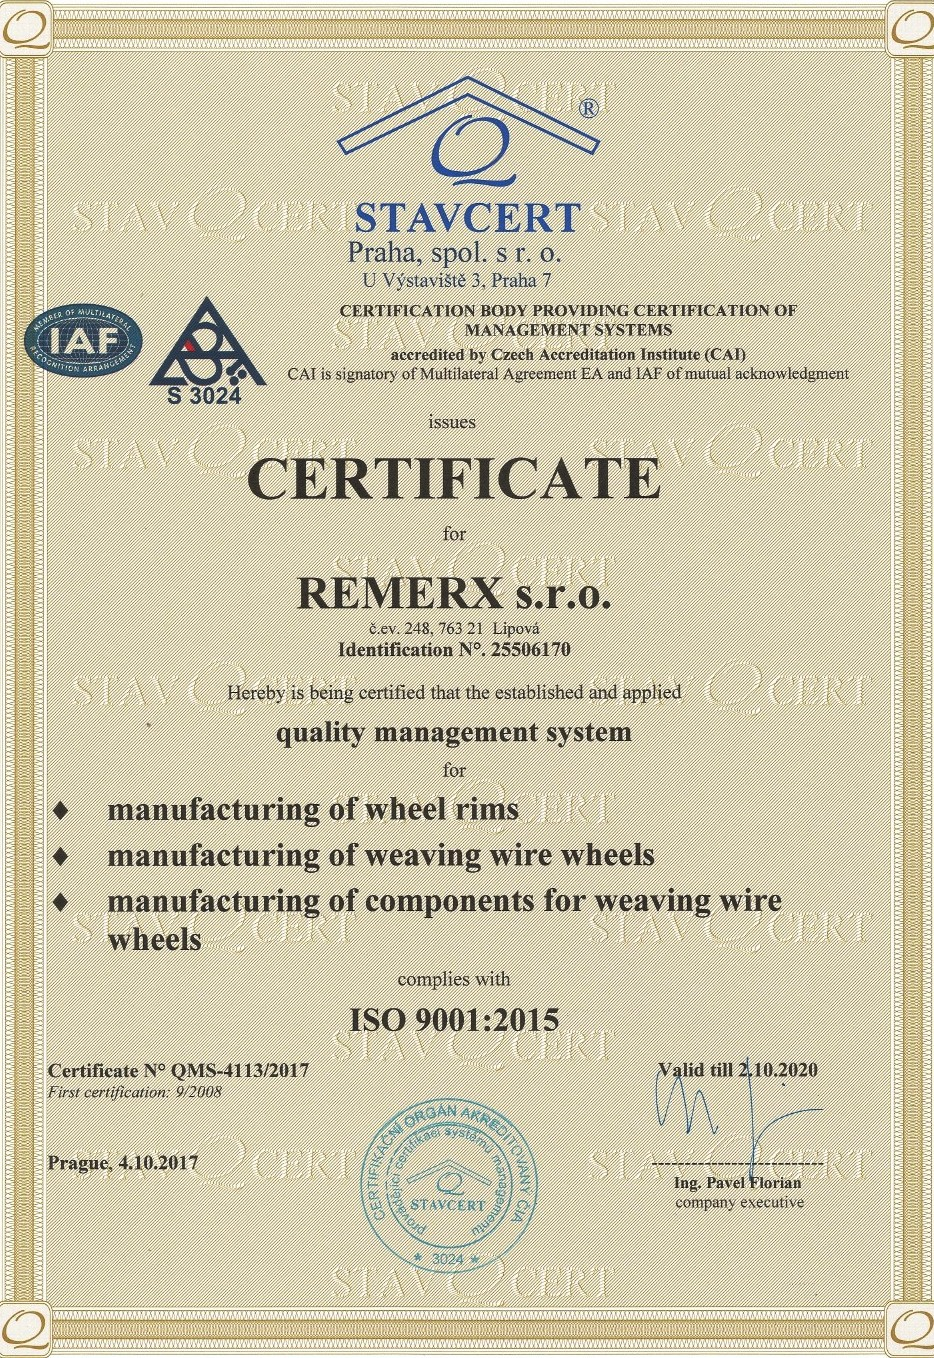 Rim and wheelset Remerx - CERTIFICATION